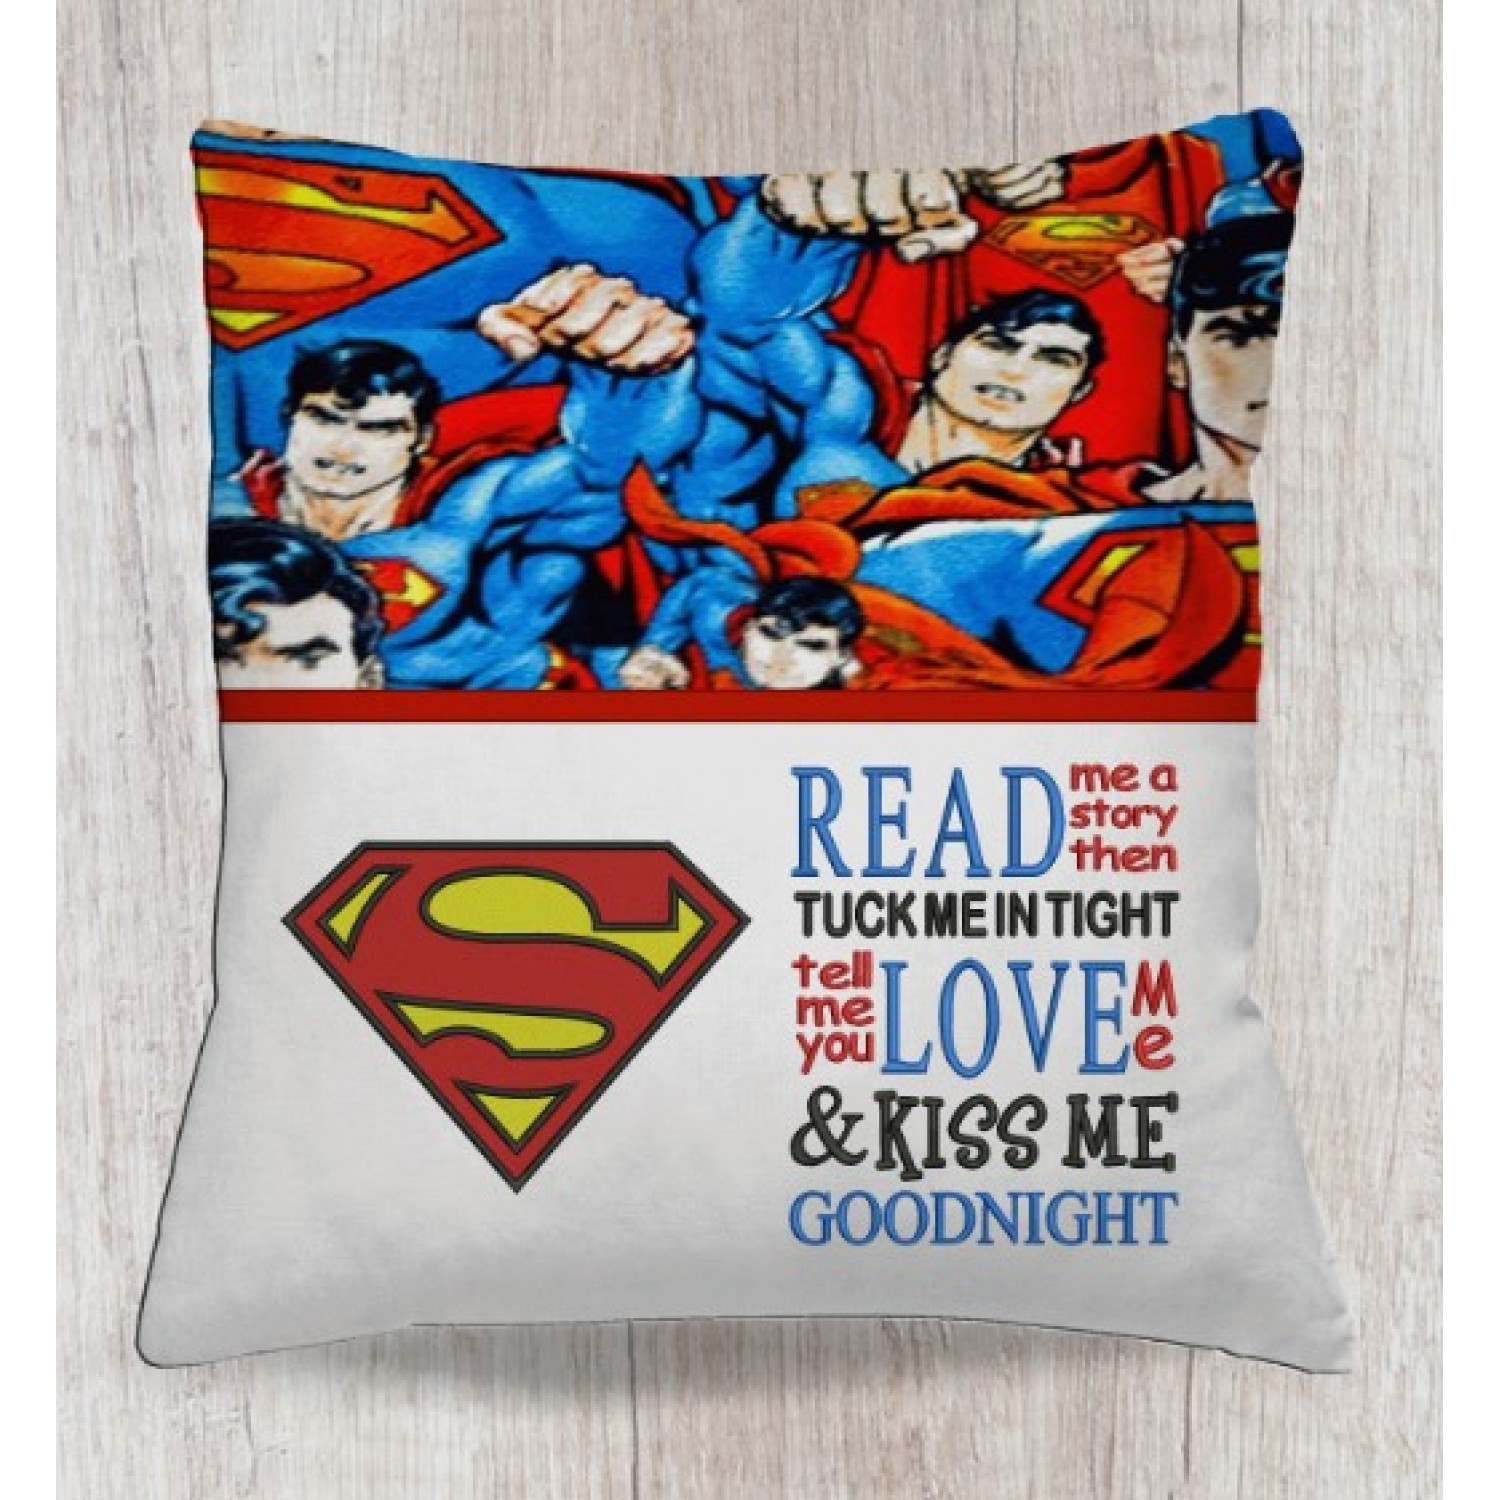 Superman logo with read me a story